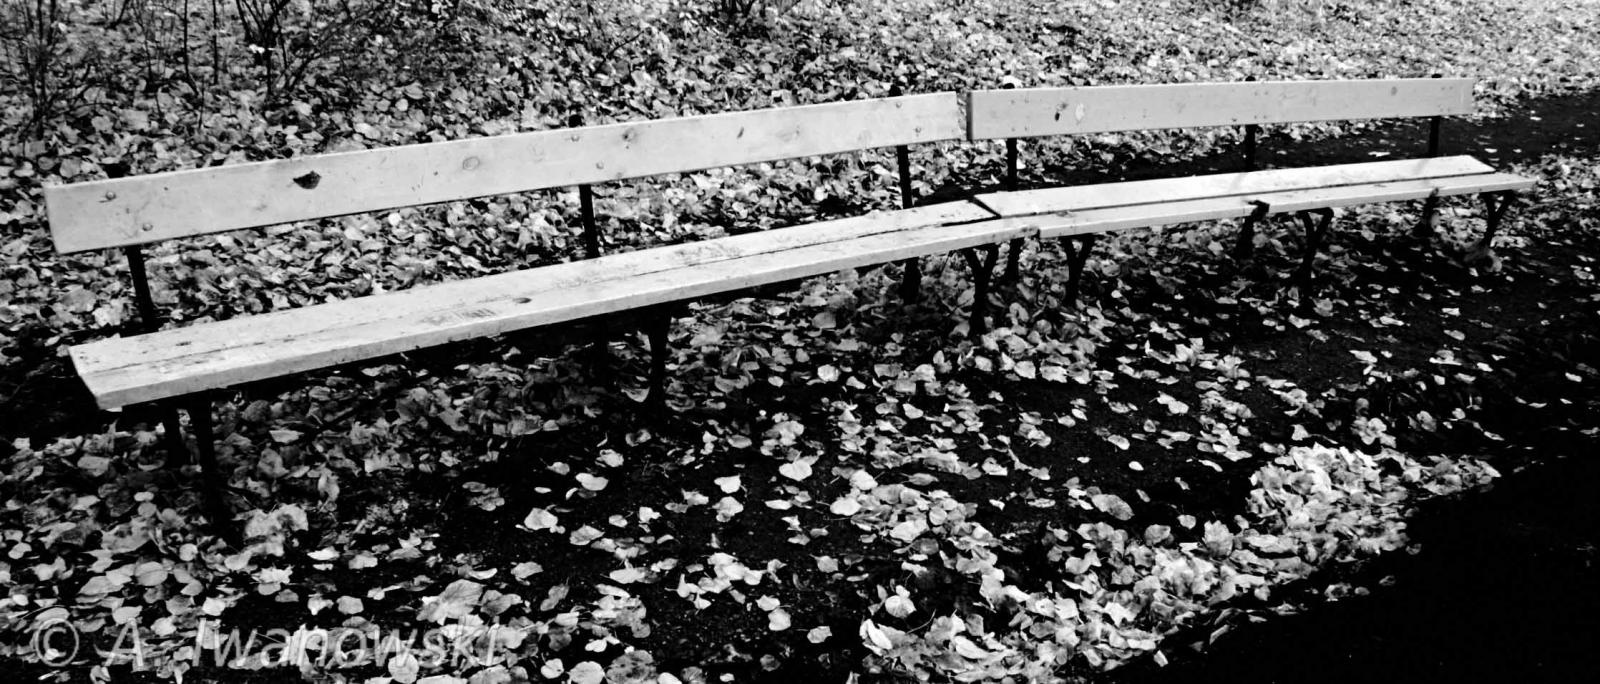 _AND3648 Bench II b&w.jpg